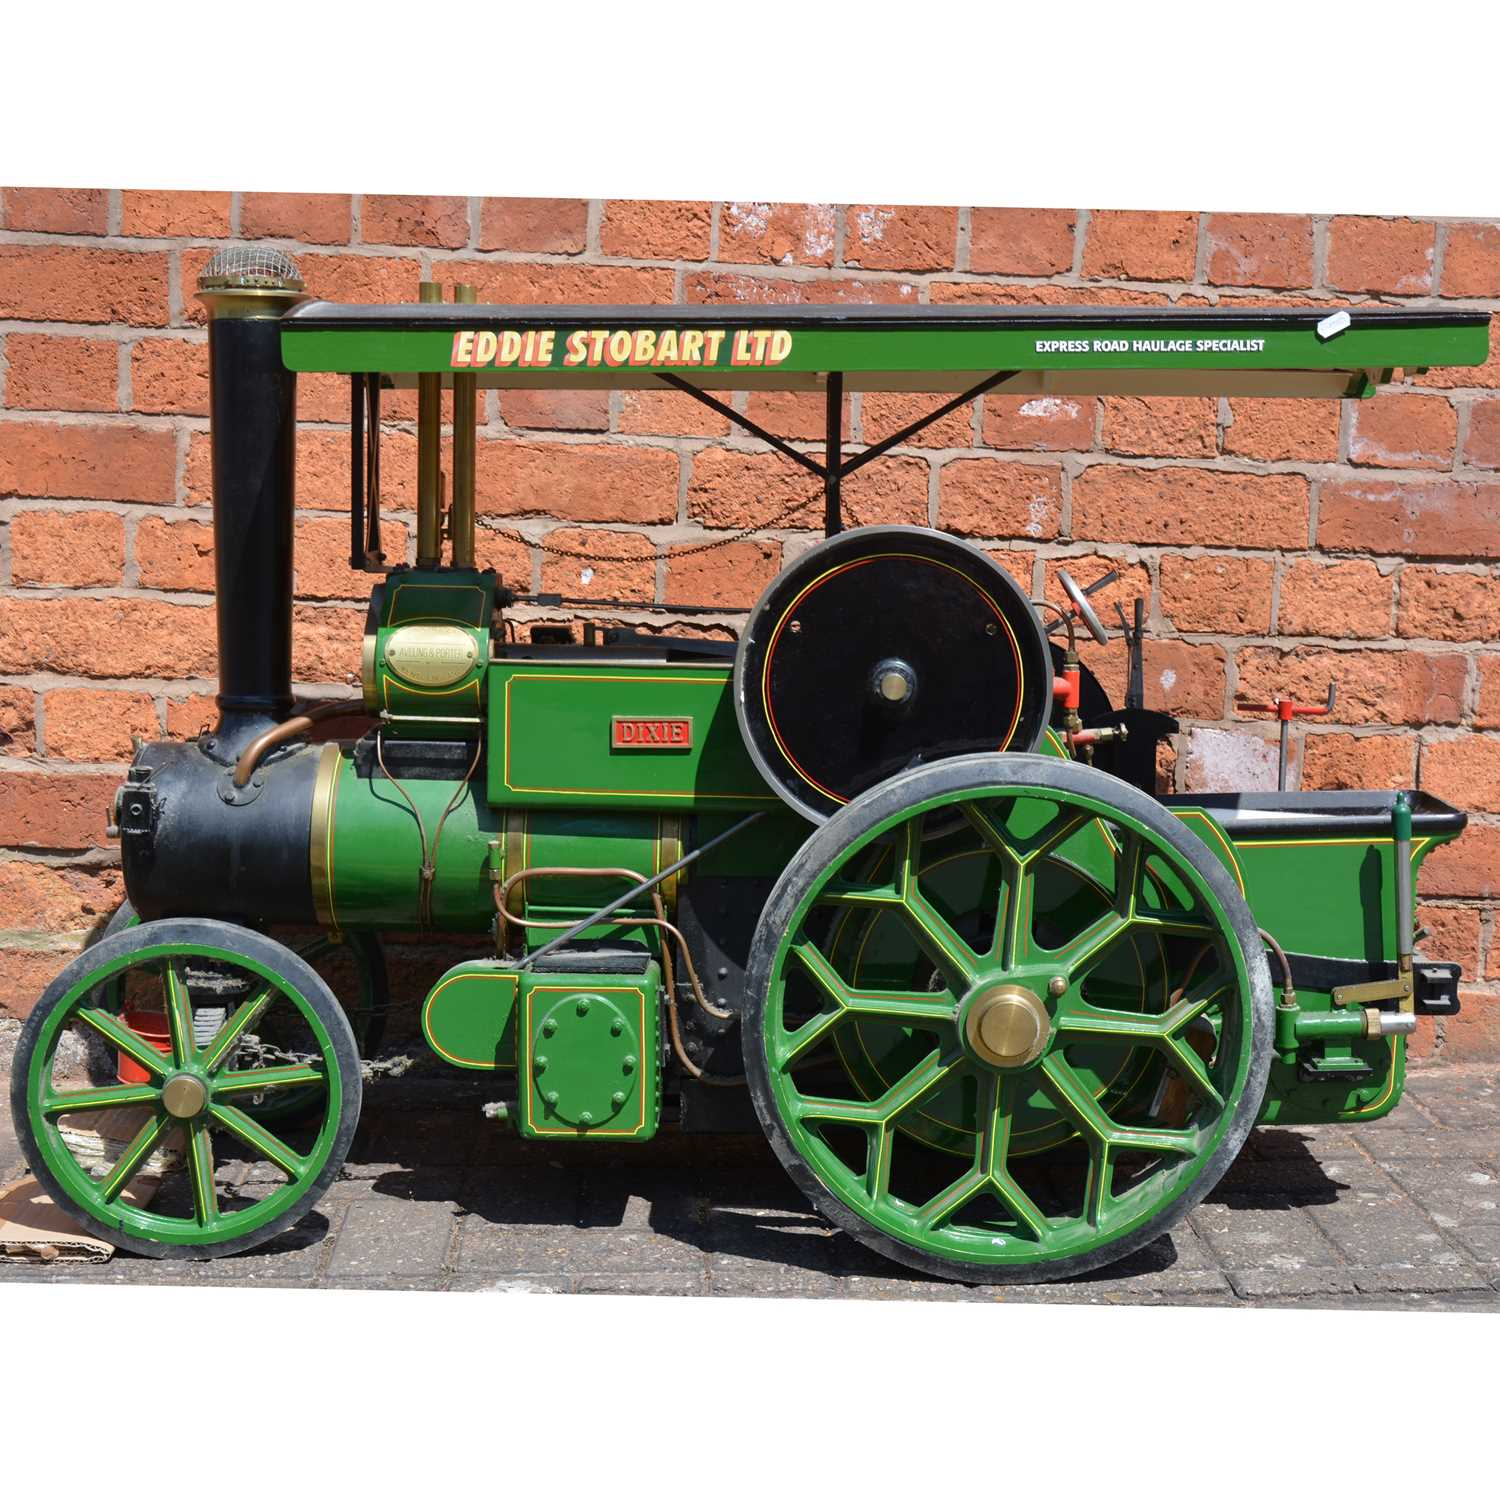 128 - Maxitrak live steam 3inch scale Aveling & Porter road roller, length 119cm, height 74cm, width 47cm, with copper TIG welded boiler, with added canopy.